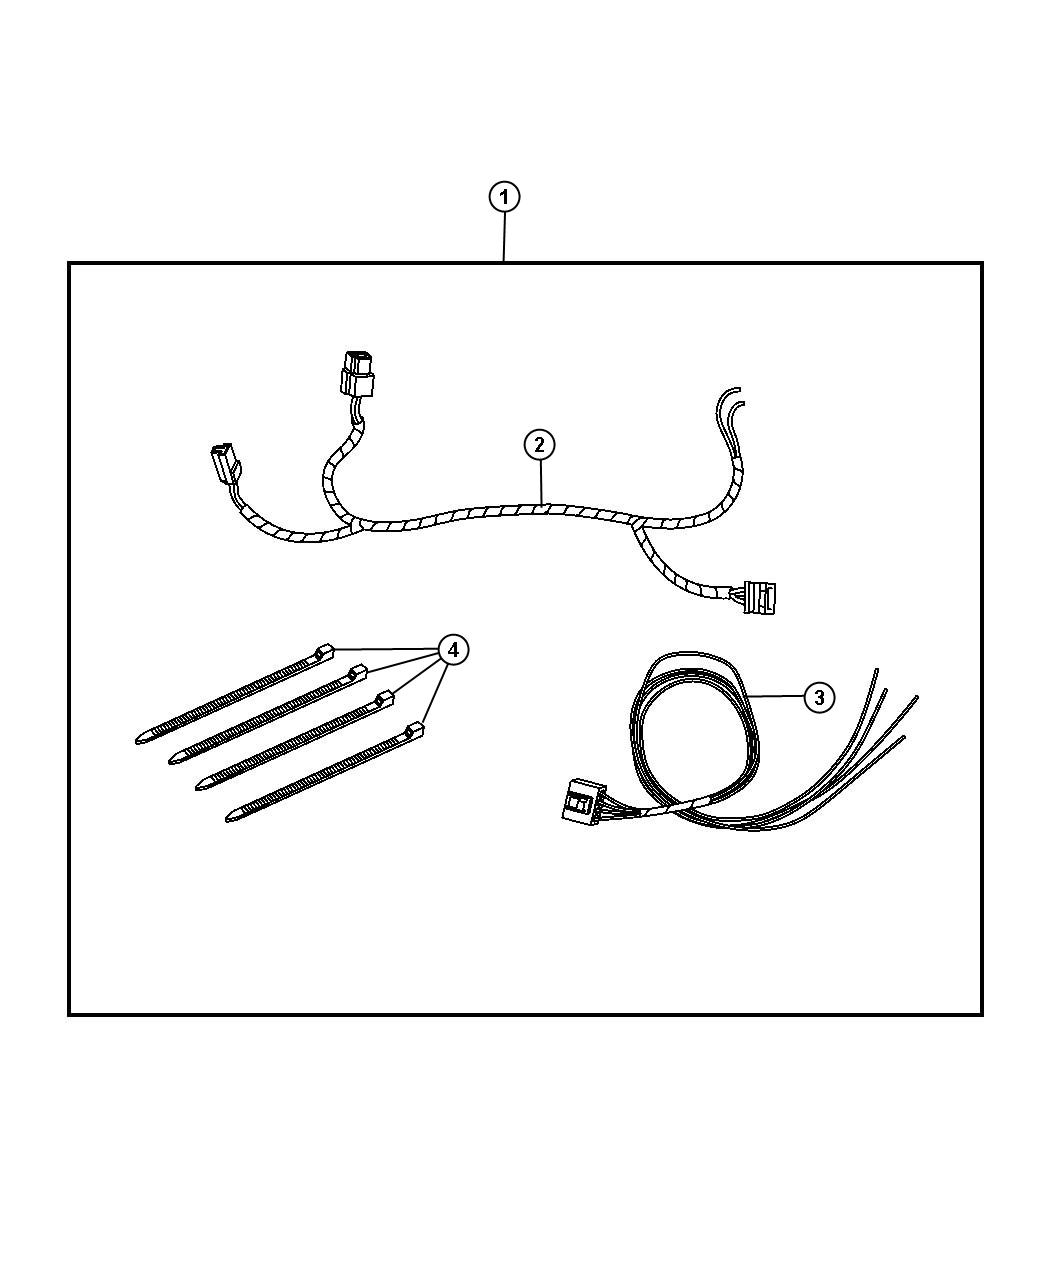 Dodge Ram Wiring Adapter Designed For Ease Of